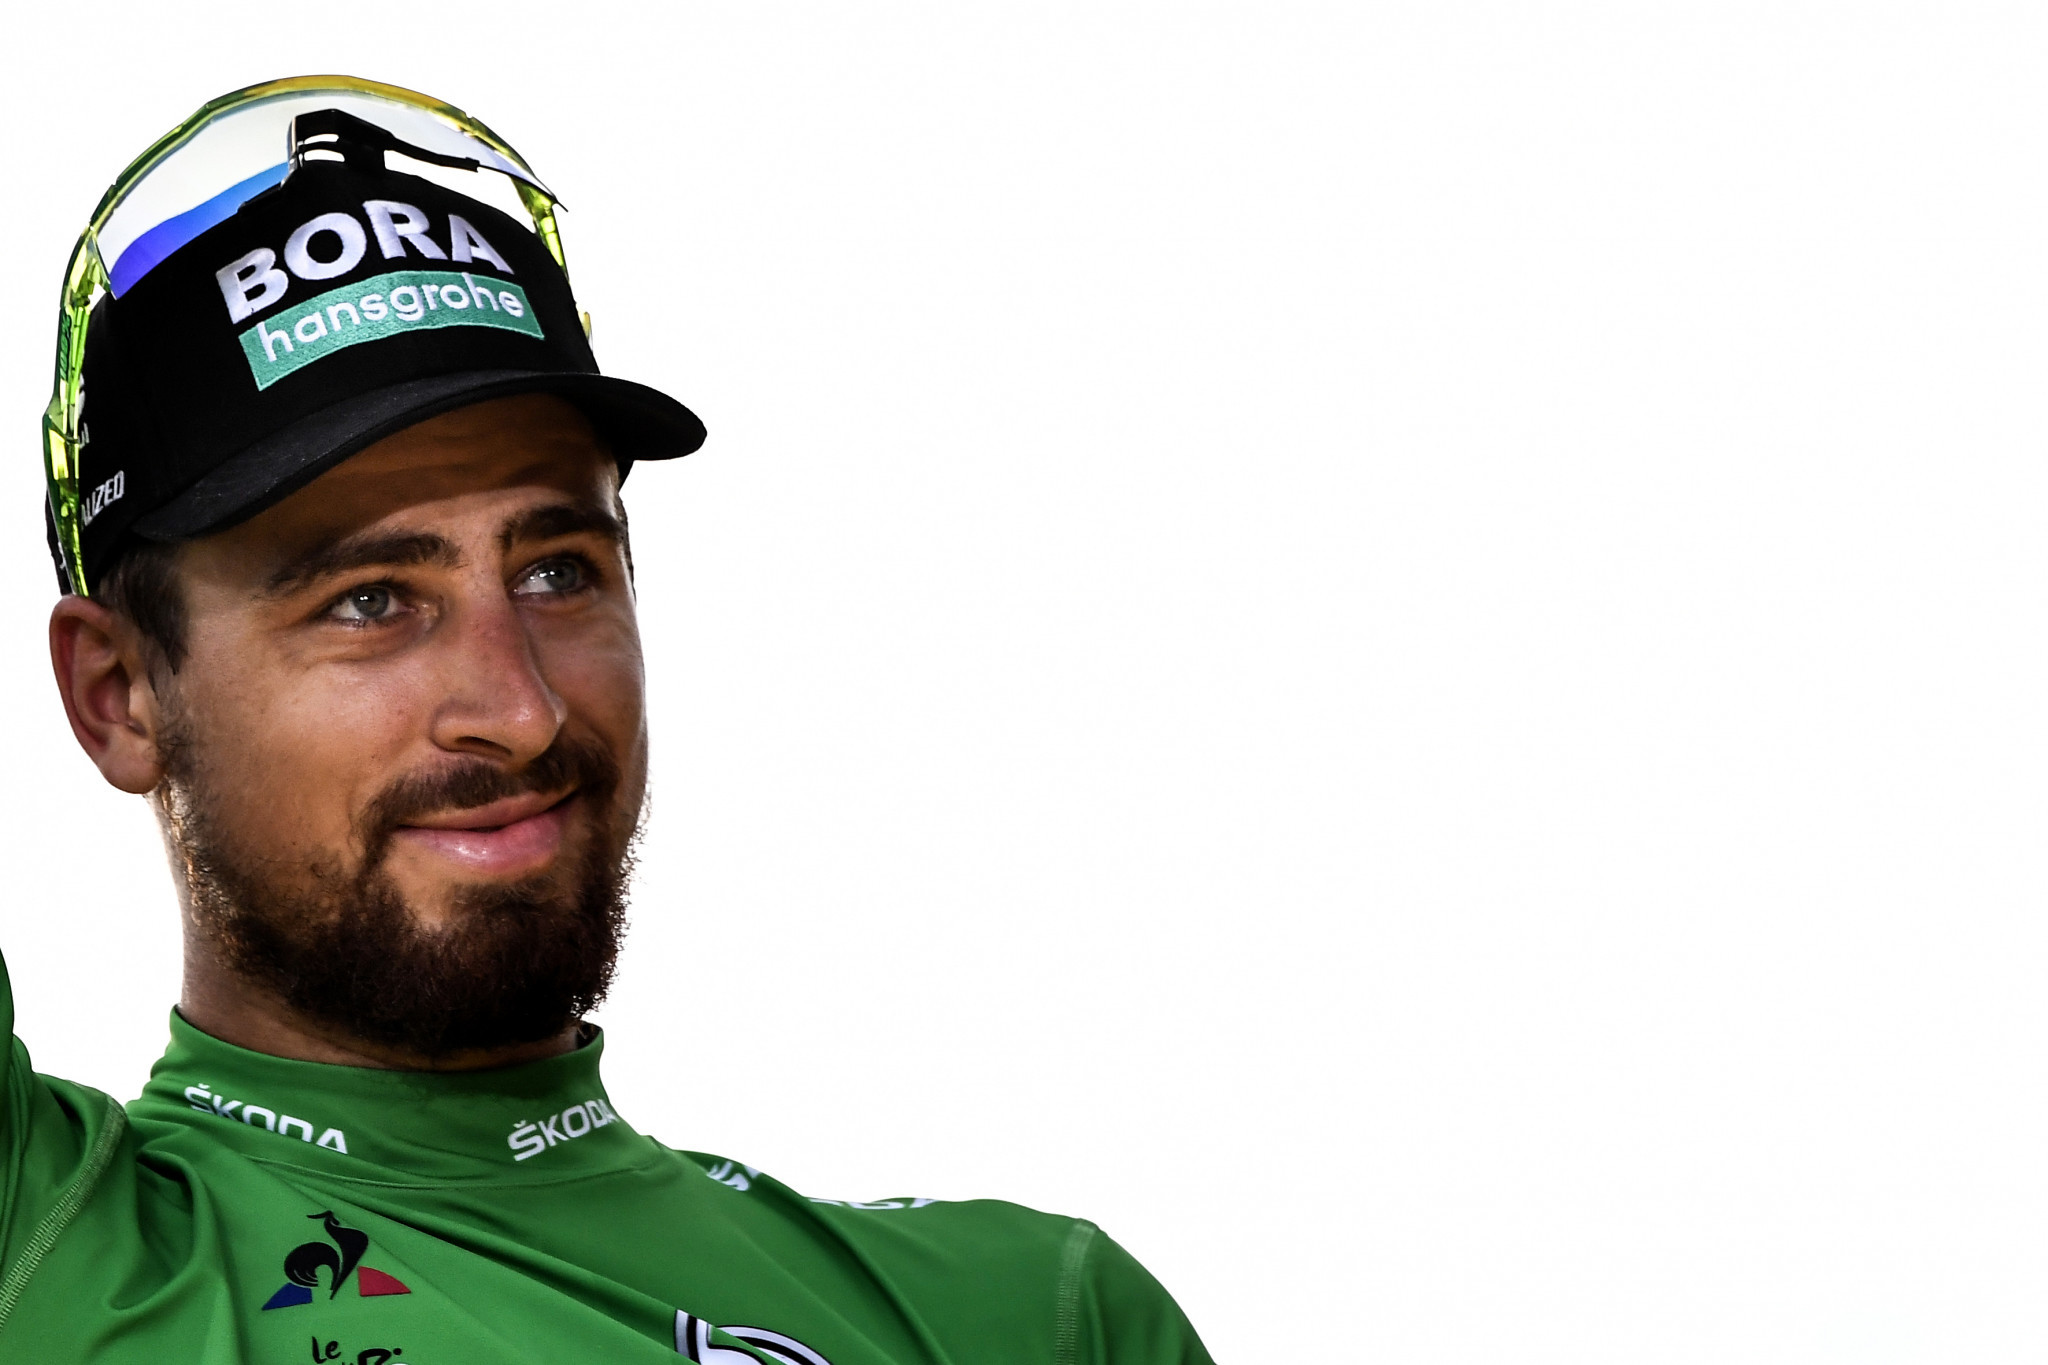 Sagan aiming for further road race success at European Championships